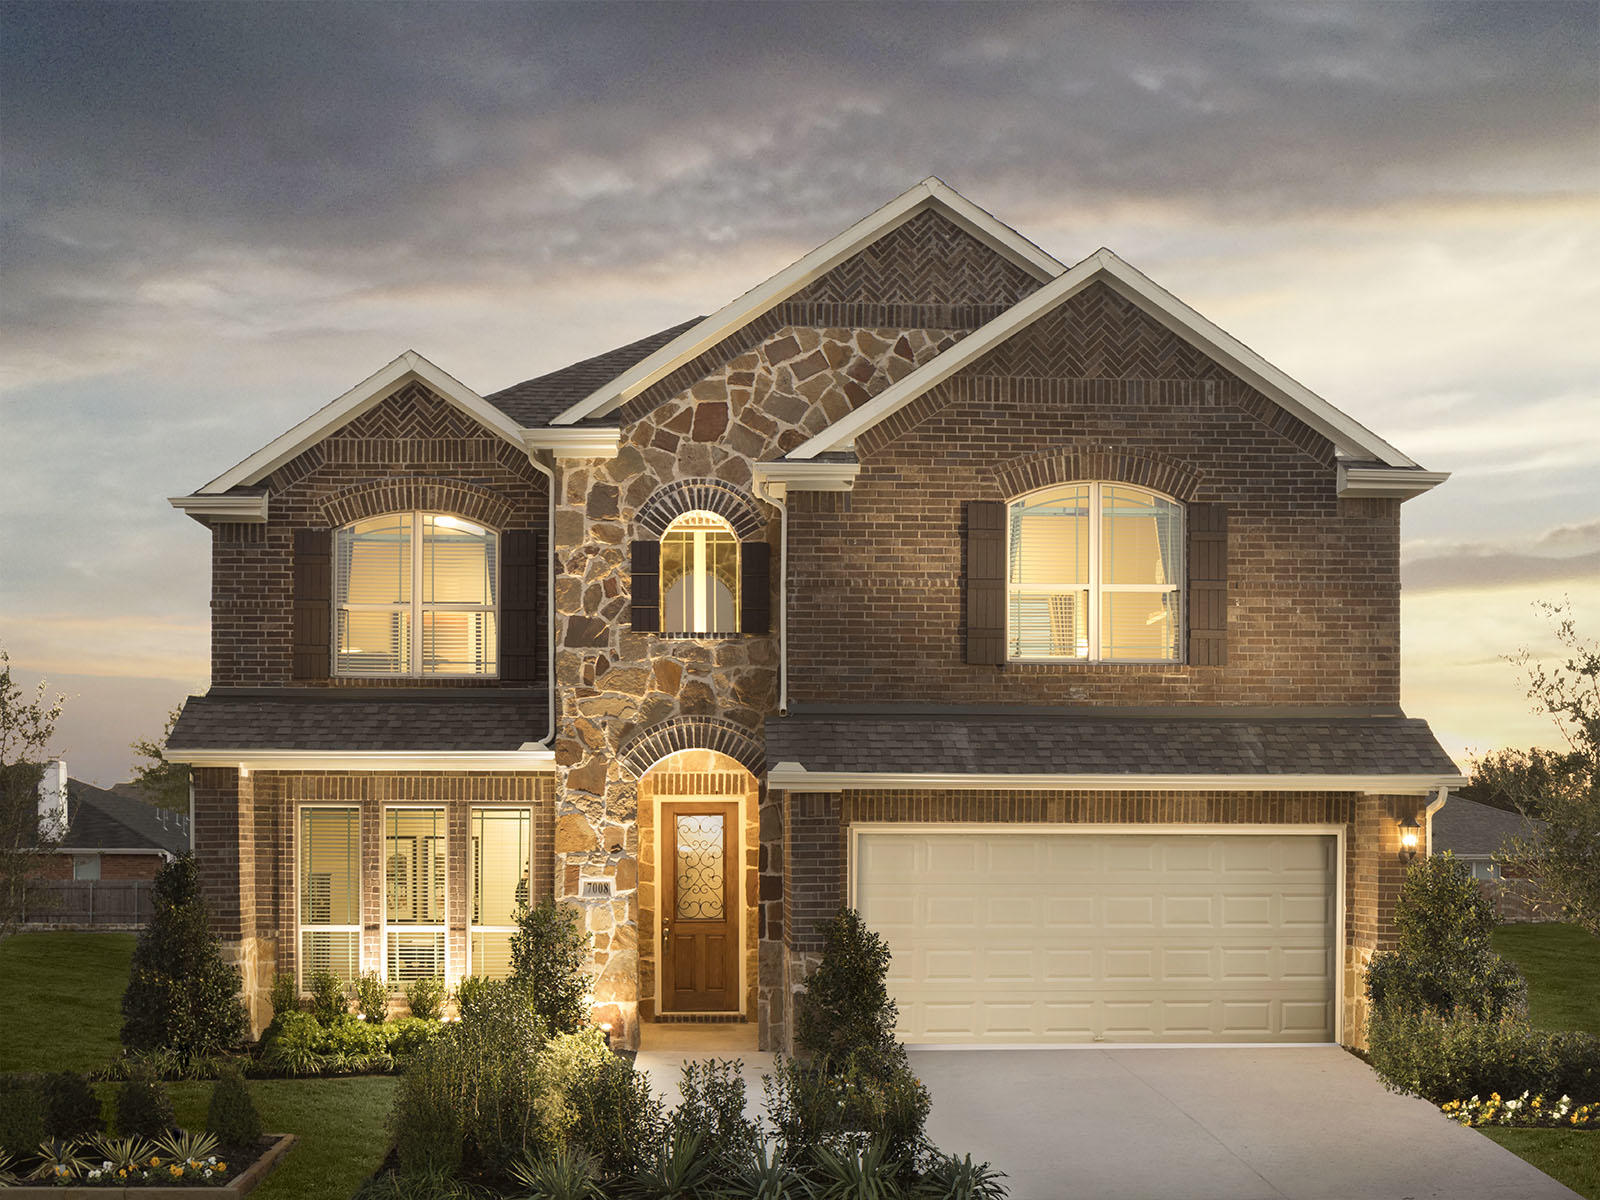 Willow Wood By Meritage Homes New Homes For Sale Rowlett Tx